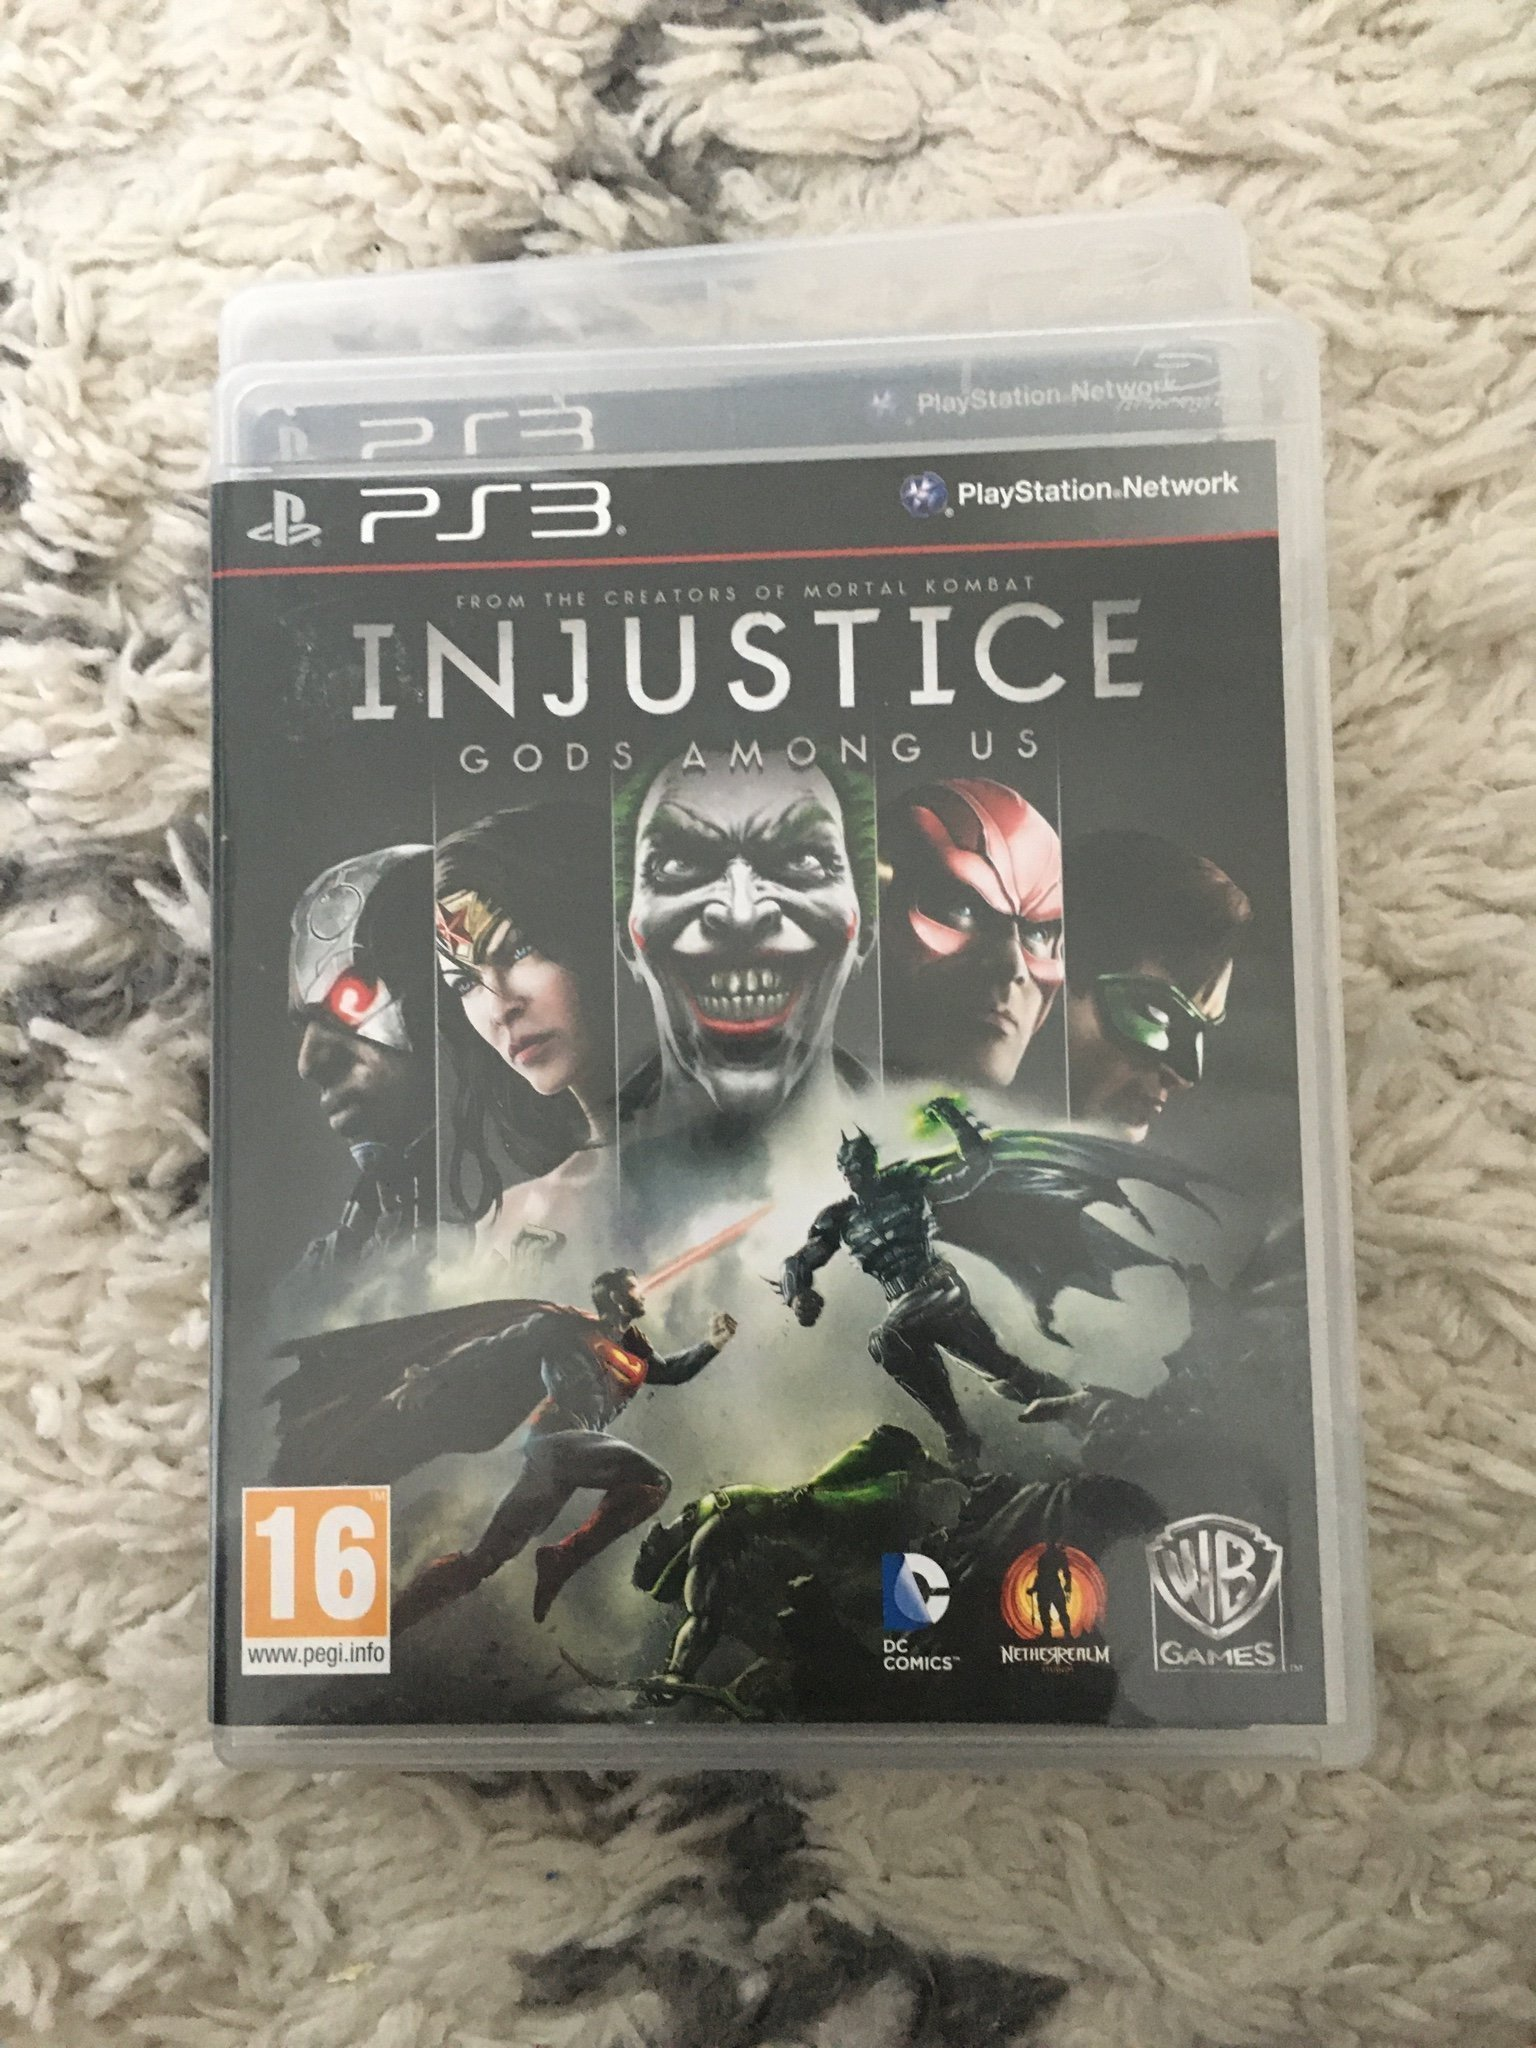 Ps3 spel Injustice gods among us